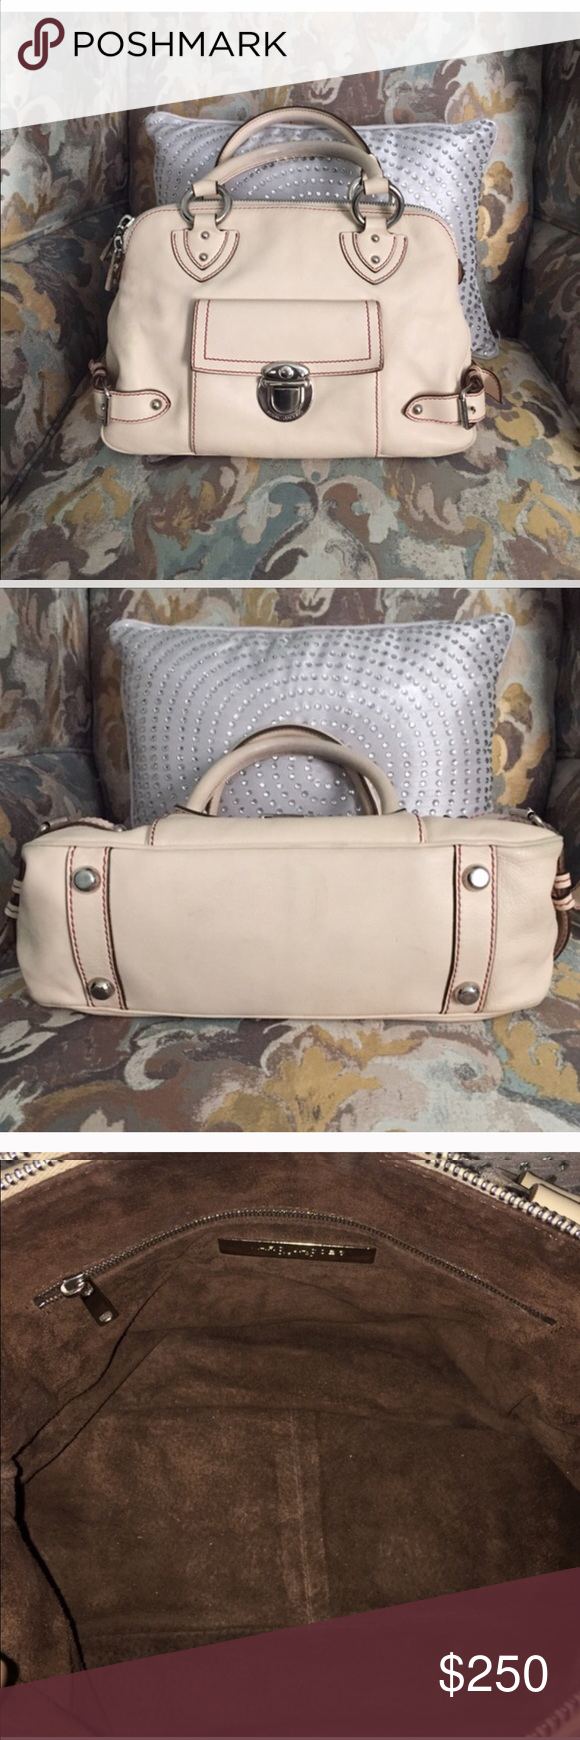 Authentic Marc Jacobs satchel. Re-Poshing was too small I like huge bags. That being said it is a Medium sized satchel. Marc Jacobs Bags Satchels